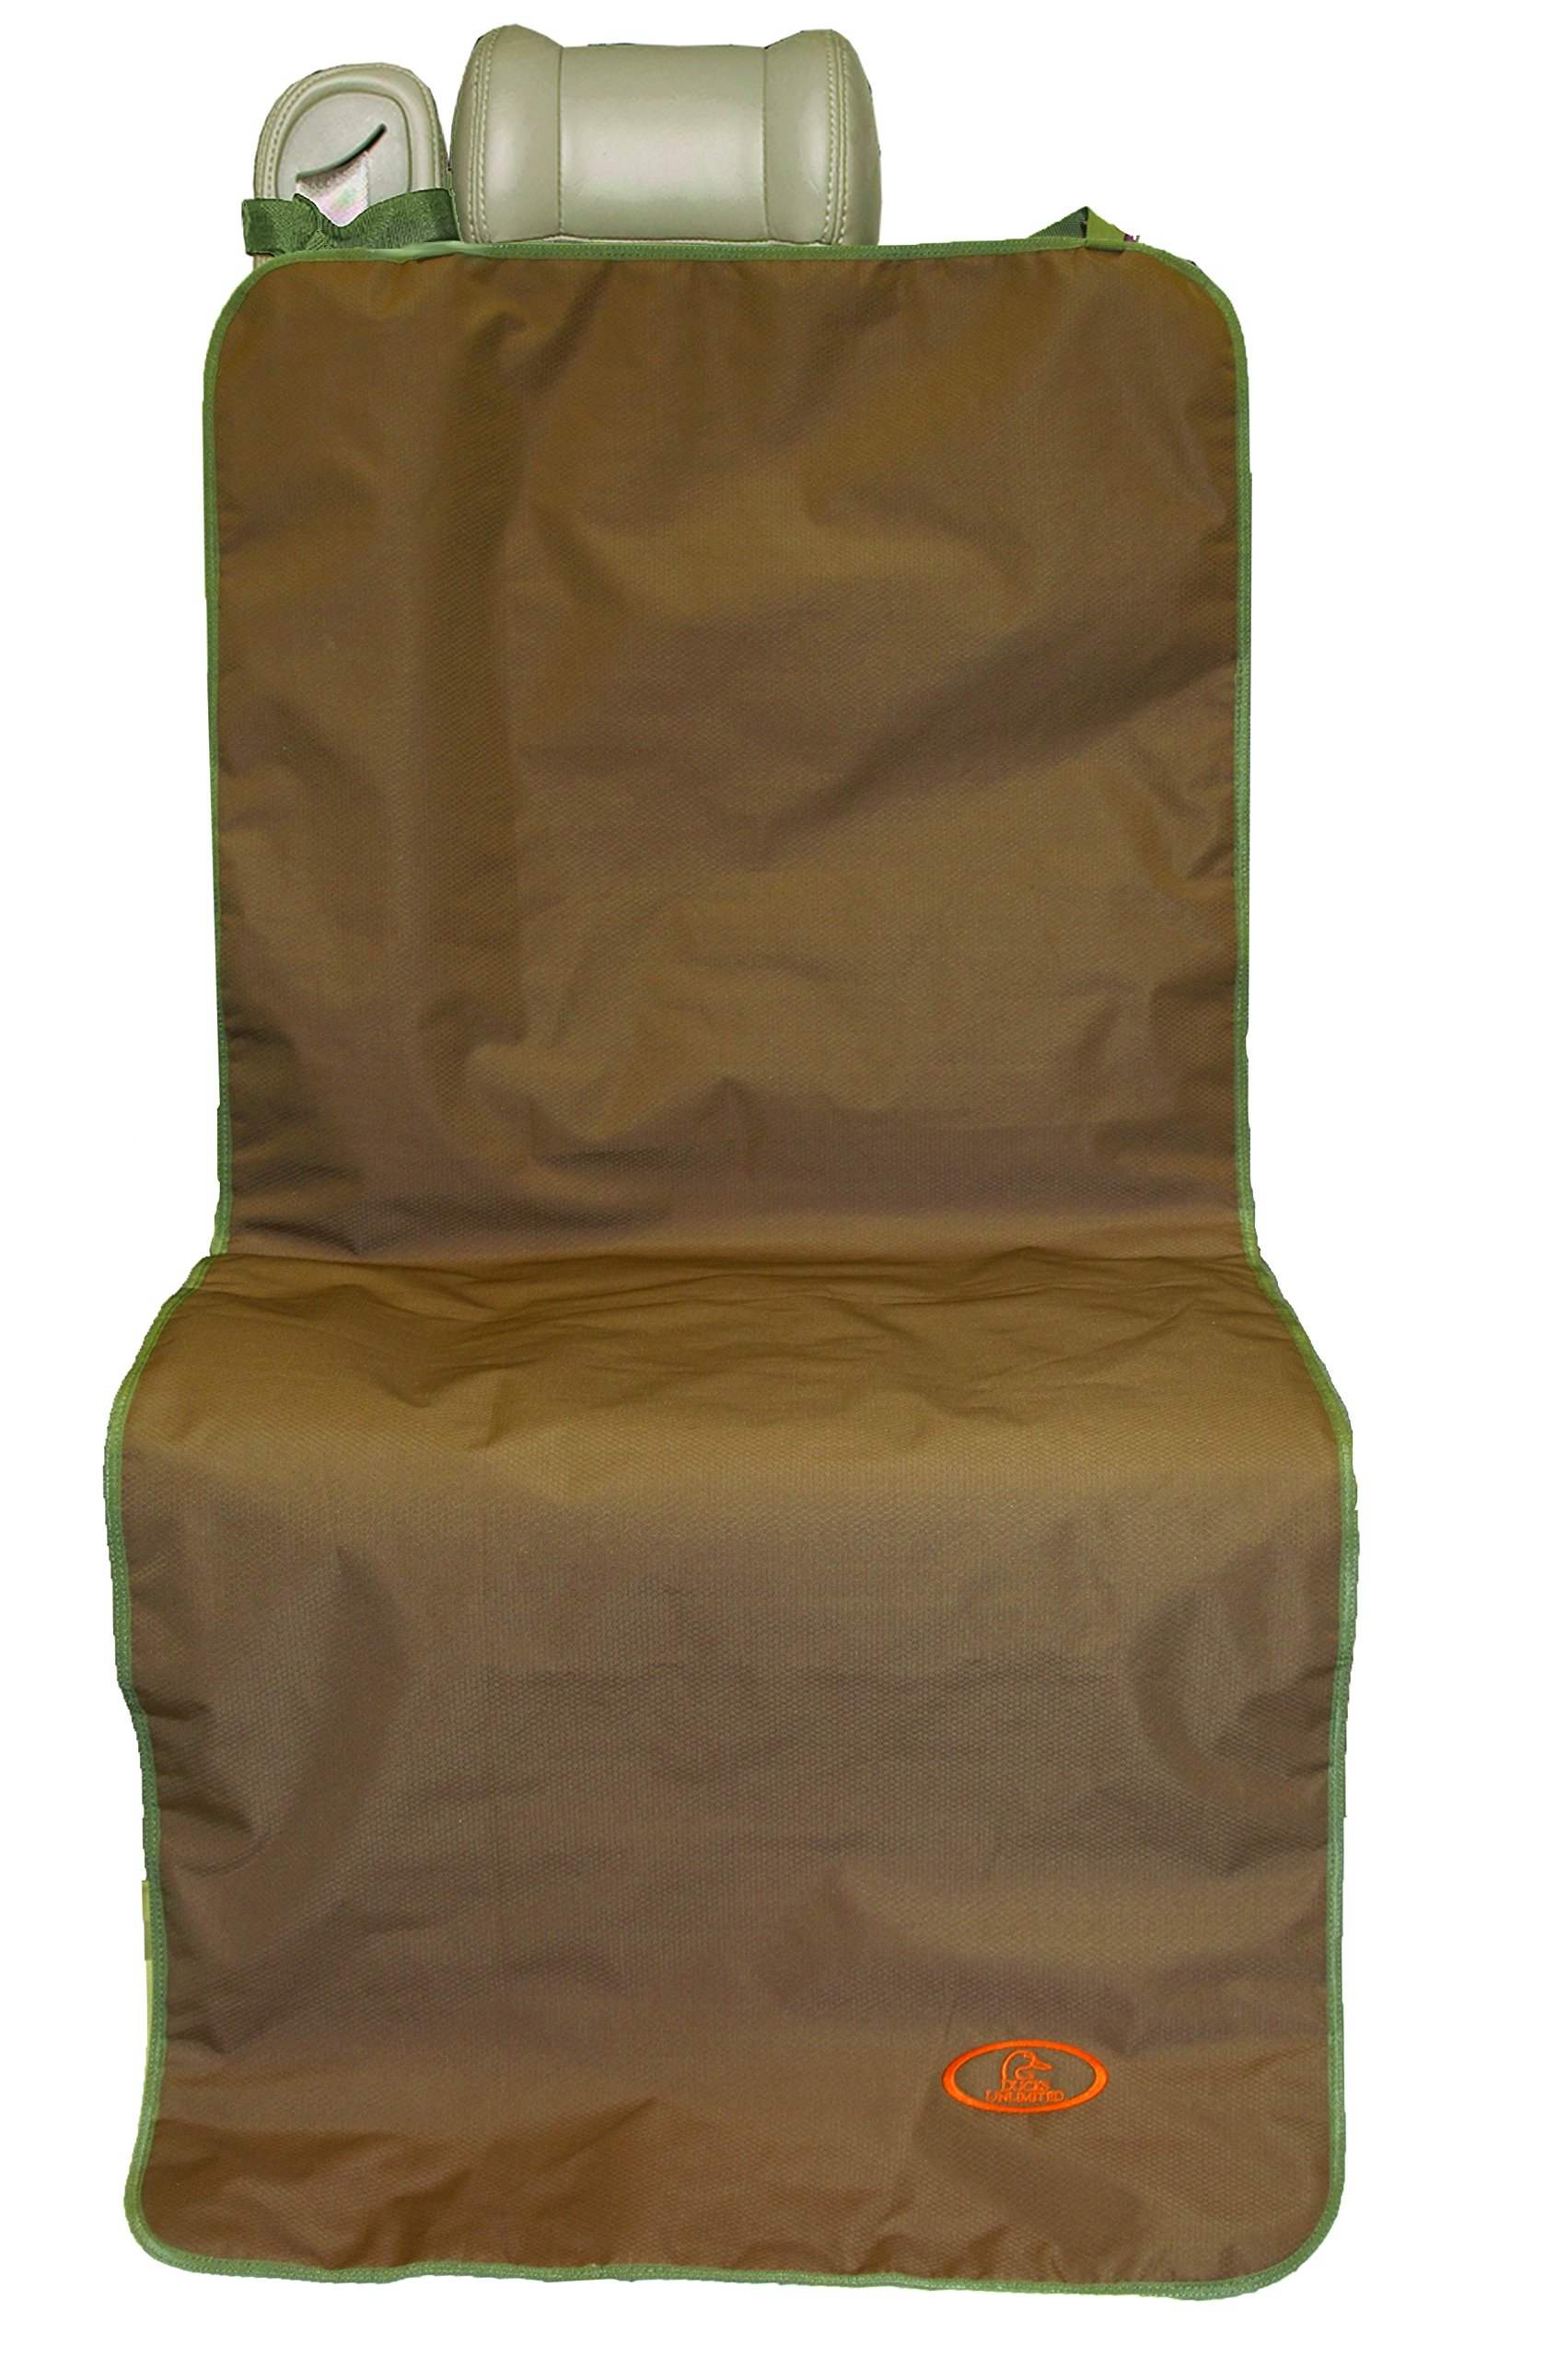 Ducks Unlimited Blades Shotgun Single Seat Cover by Ducks Unlimited (Image #2)